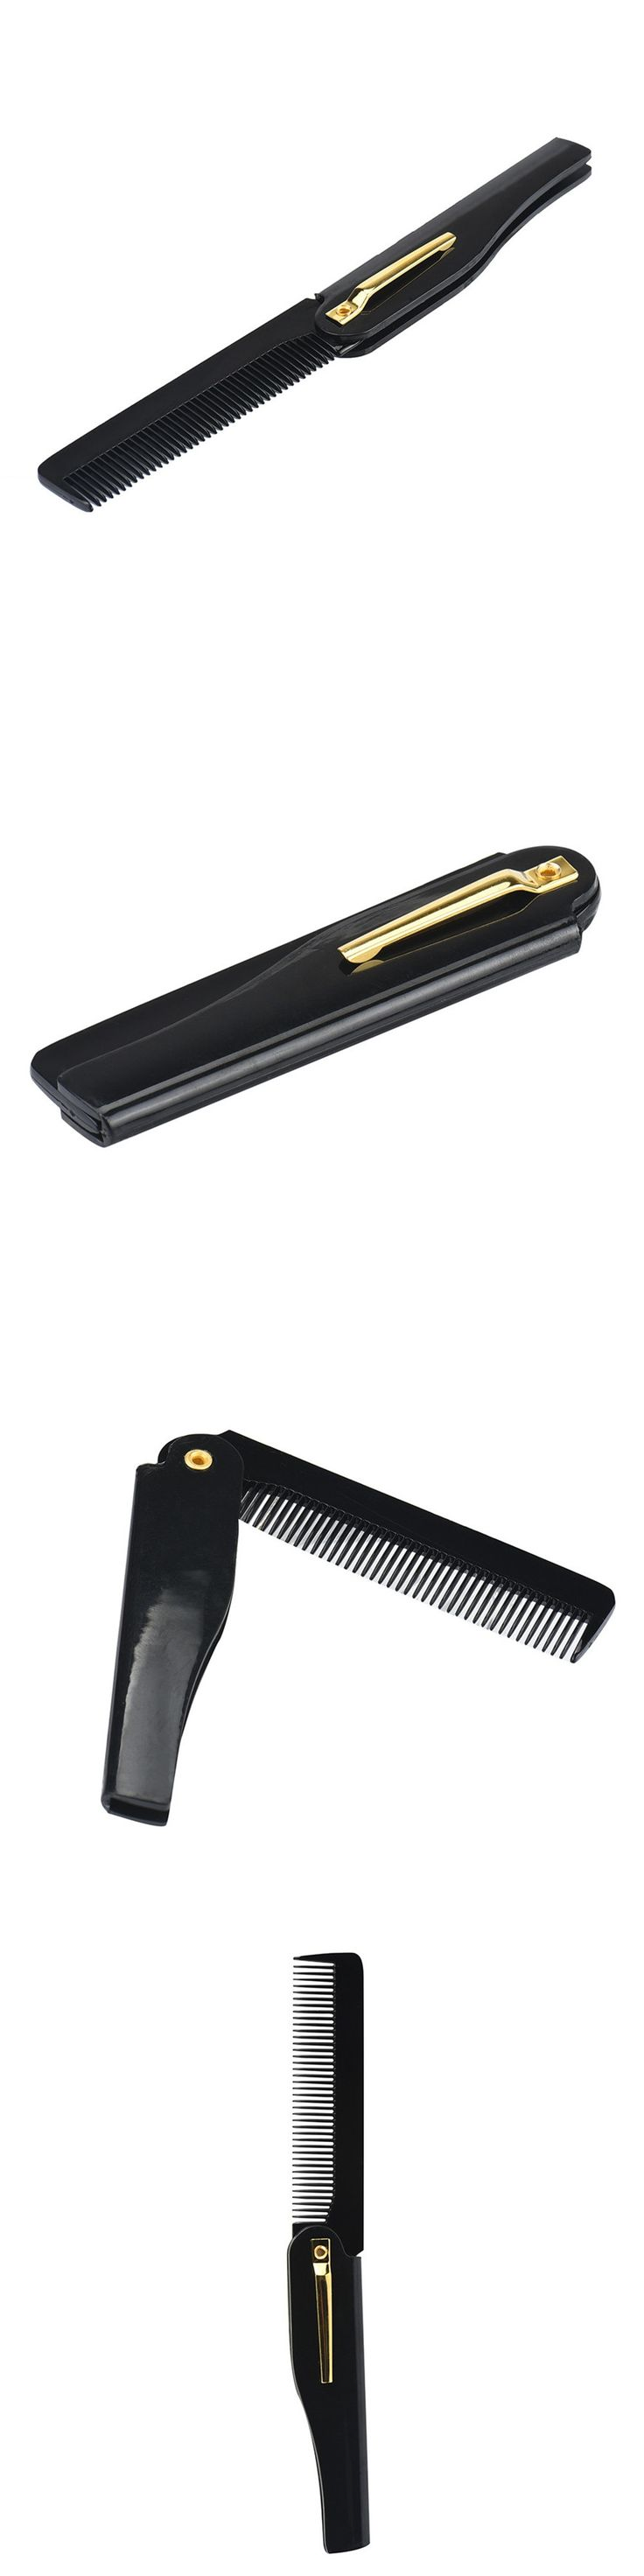 A# 2017 Hairdressing Beauty Folding Beard And Beard Comb Beauty Tools For Men hair brush #1030